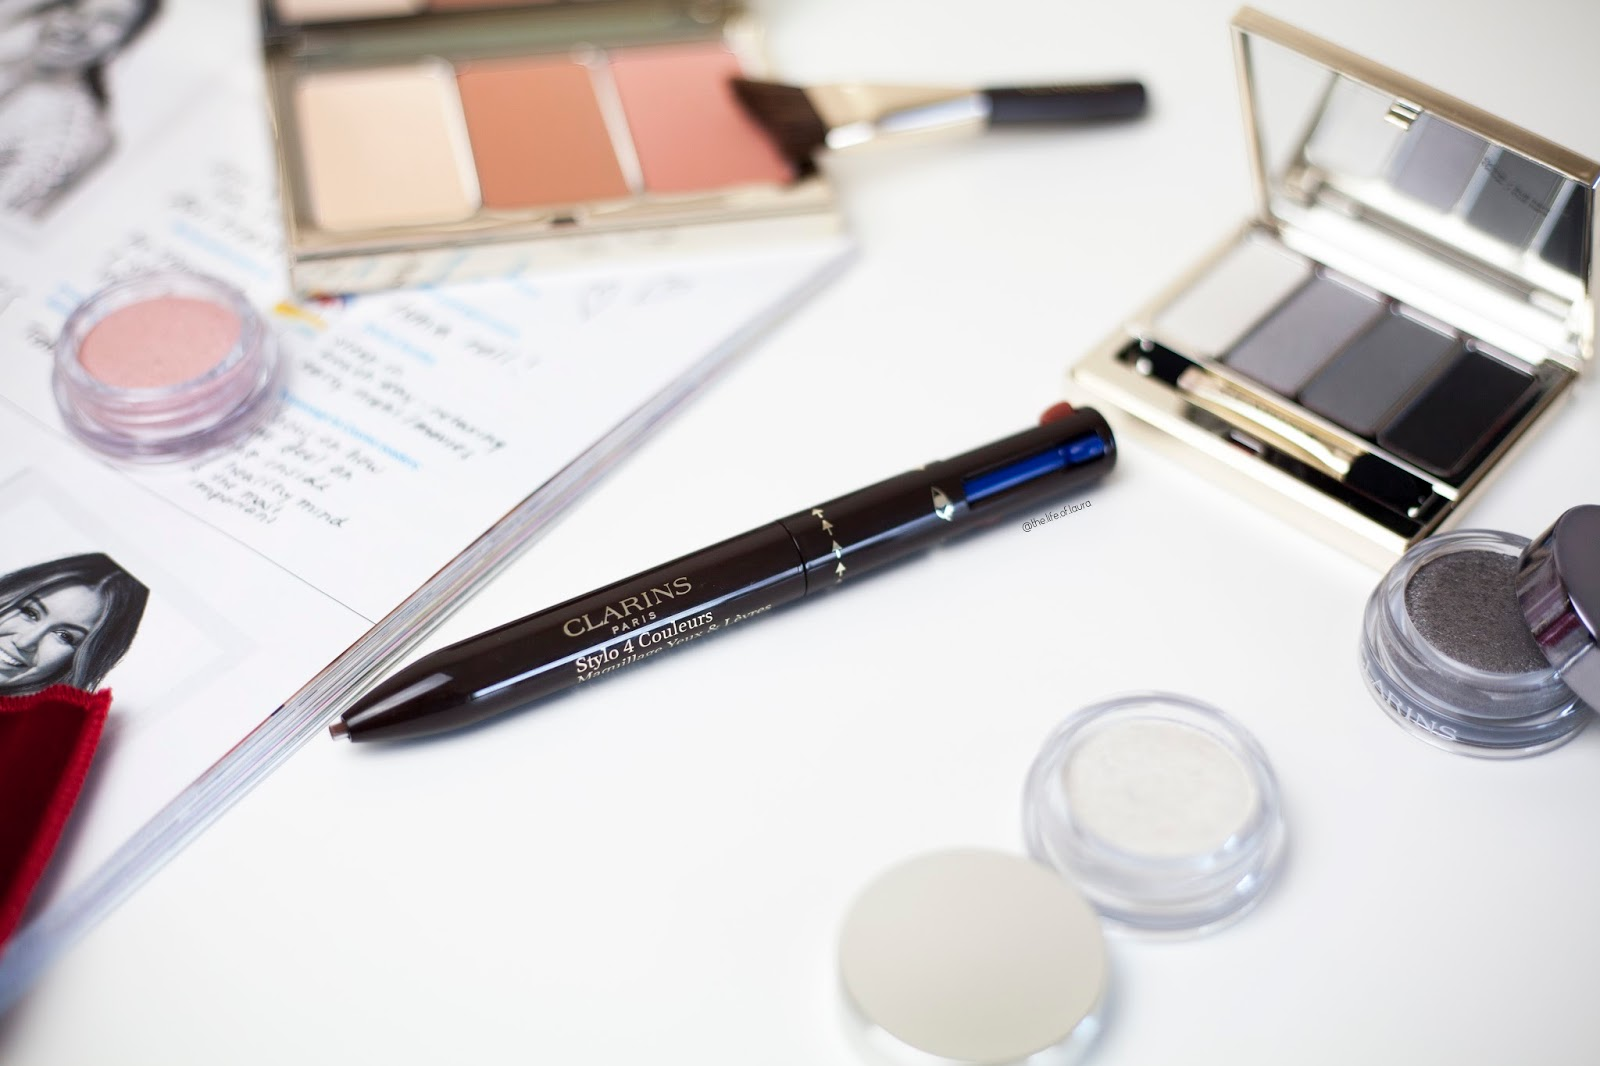 Clarins Spring Make Up 4 Colour Pen